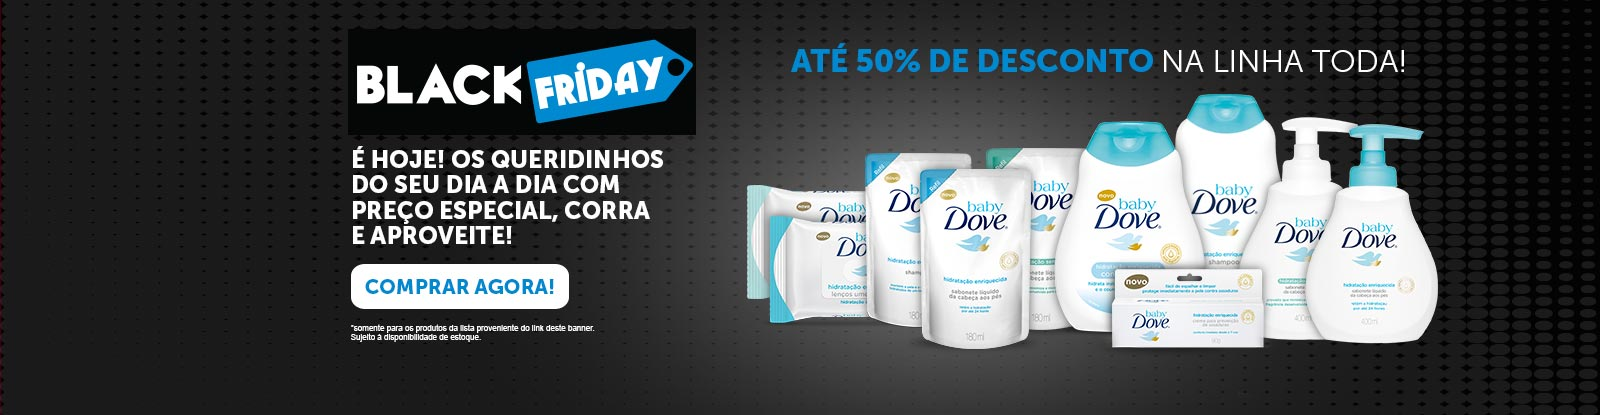 Black Friday Unilever